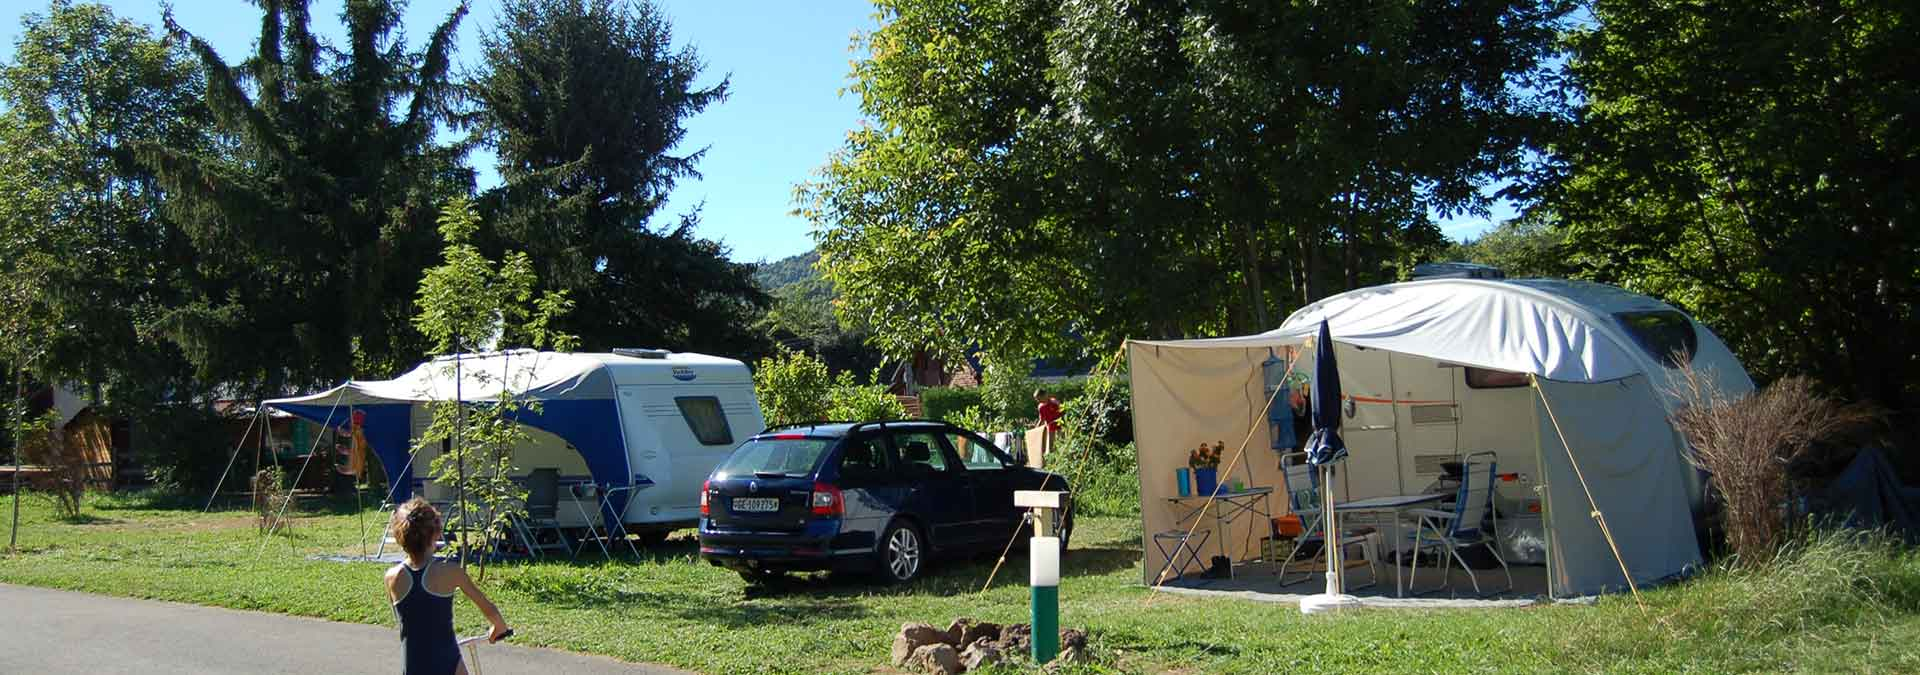 emplacement camping lac chambom murol